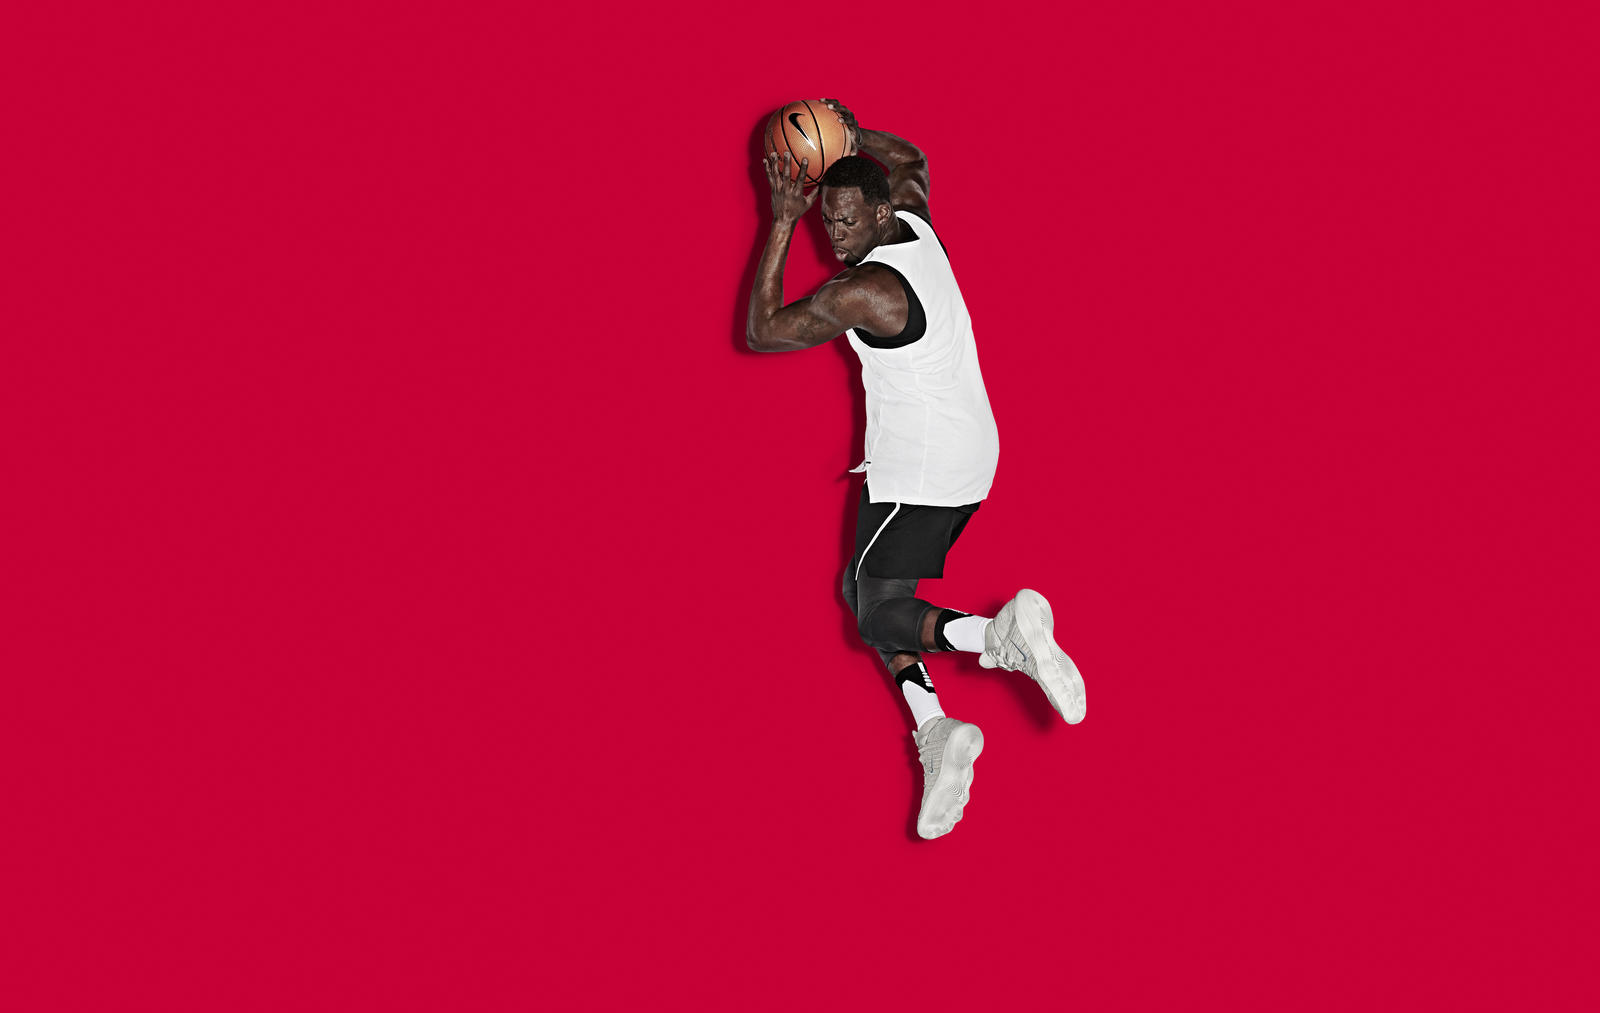 reputable site 135b7 53c6b Nike Basketball redefines the limits of the game this season with its latest  and most innovative shoe – the Nike React Hyperdunk 2017 Flyknit.